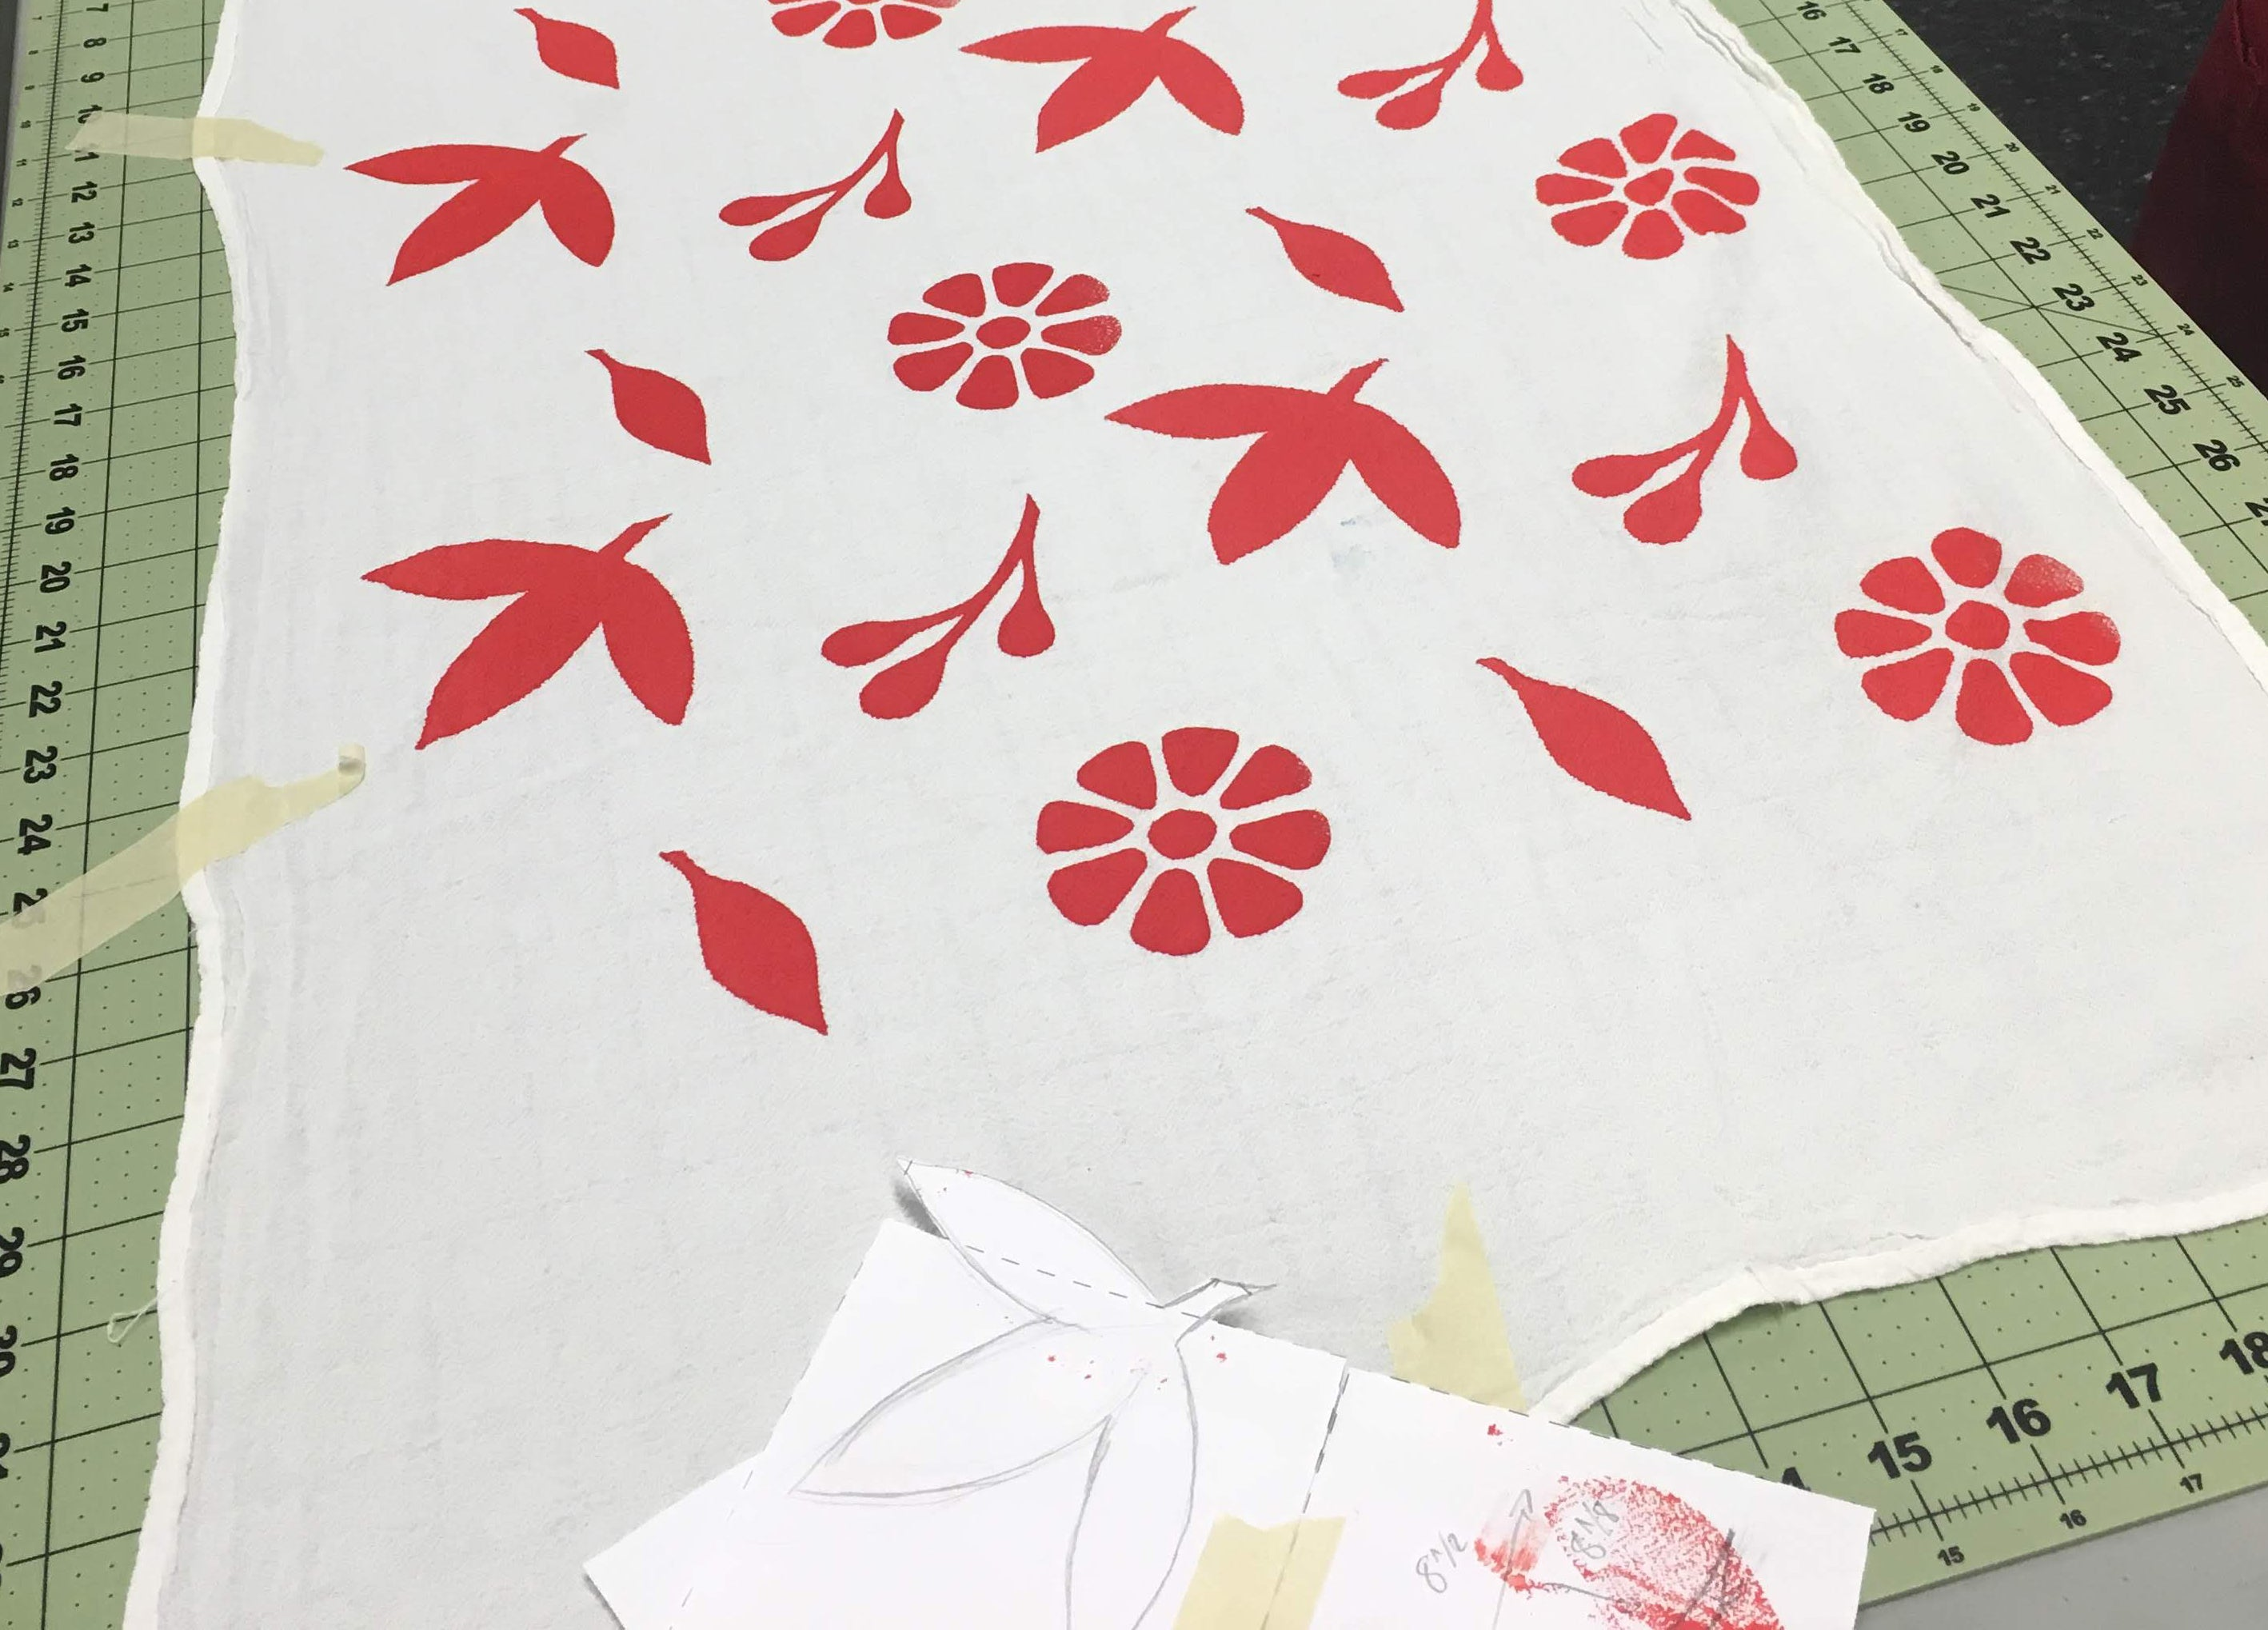 10/19 Textile Screen Printing Workshop: Fashion Scarf on Saturday October 19 at 10am